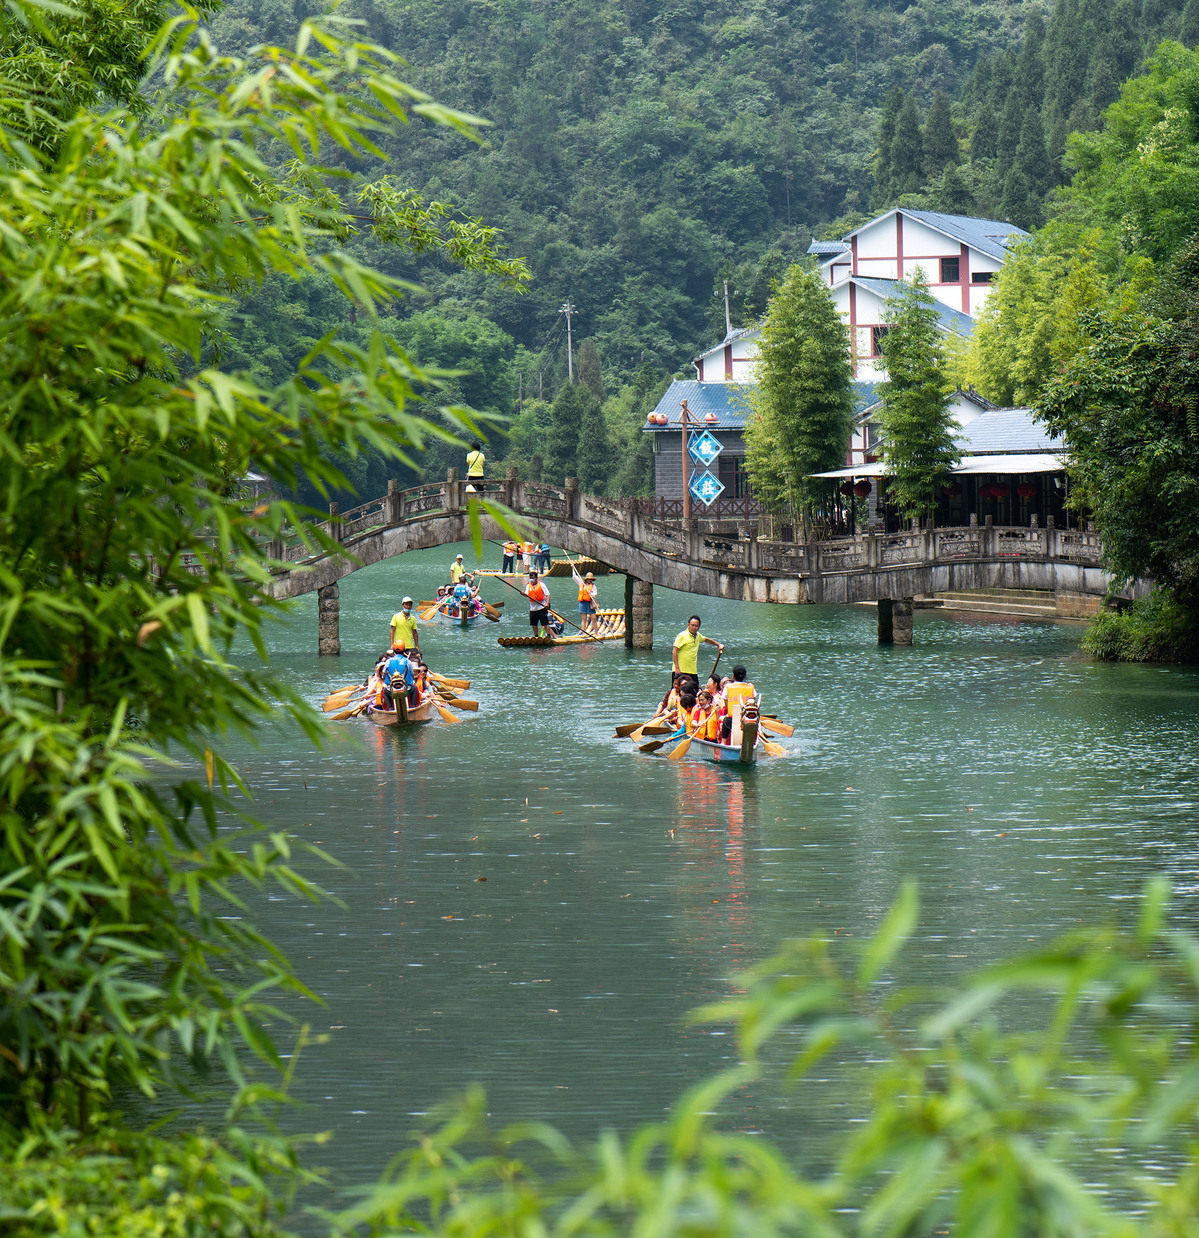 Tourism recovering steadily in central China's Hubei